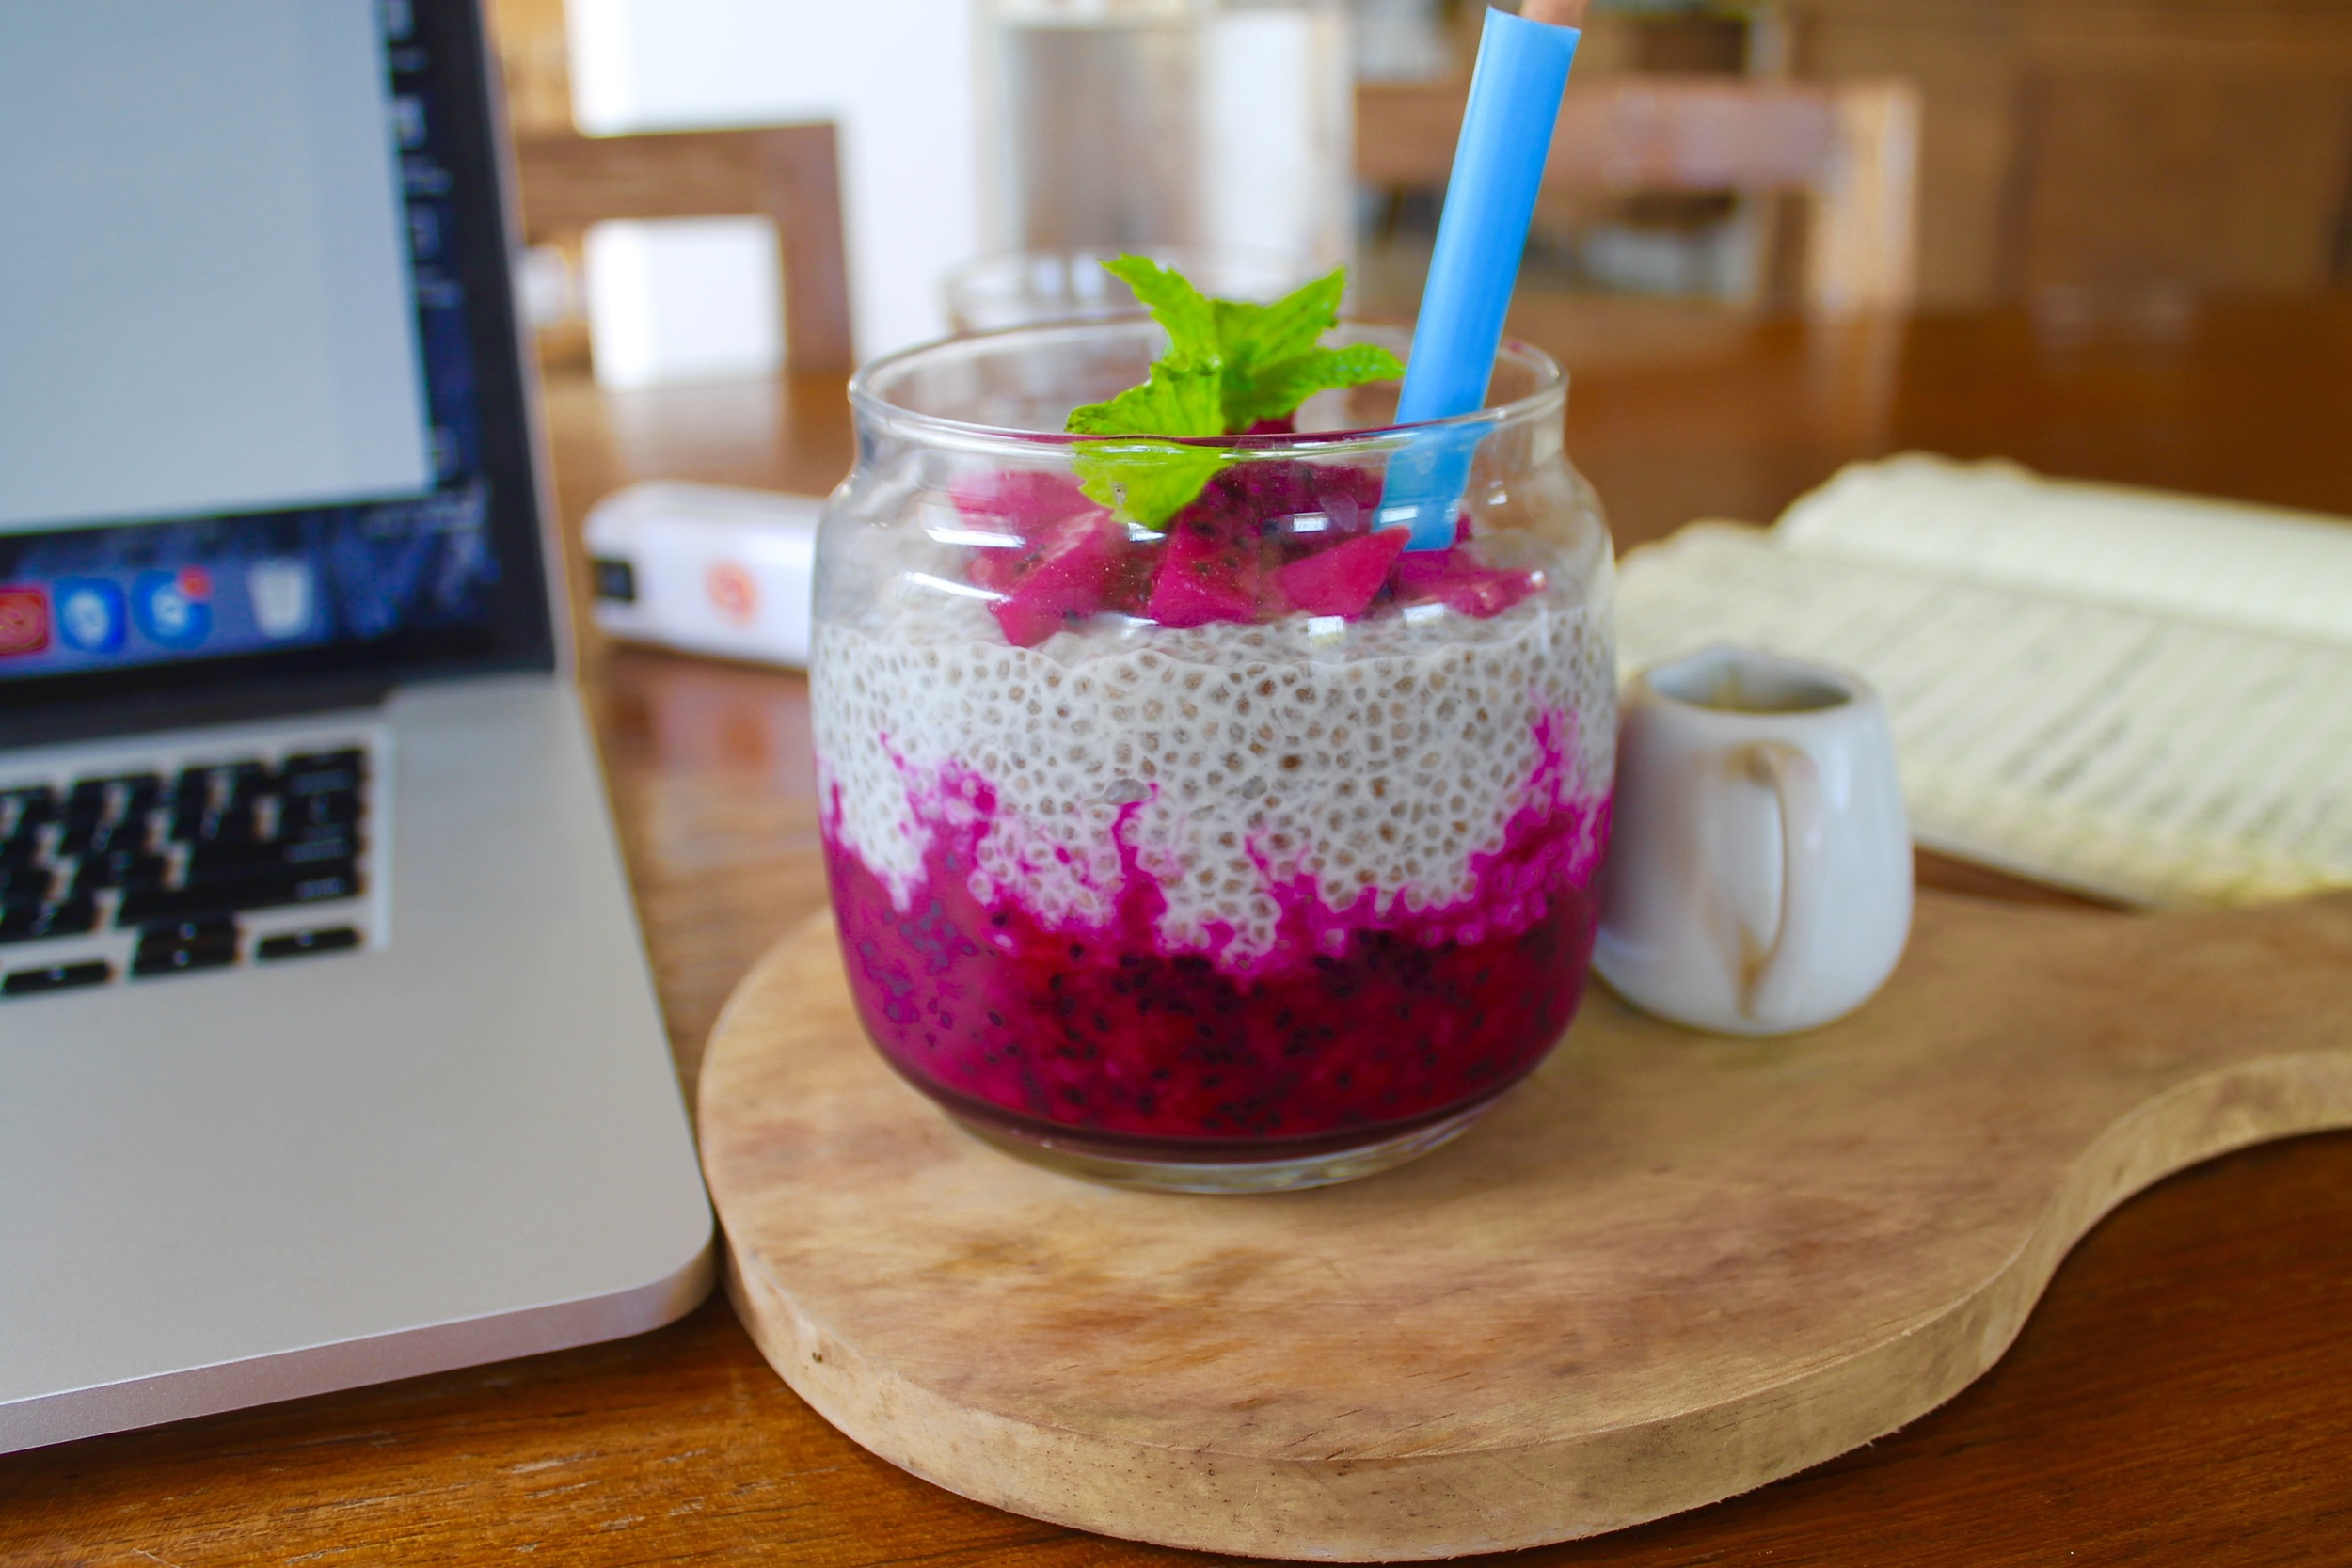 Bali: Because if you need to stare at computer screen most days you might as well be somewhere that you'll be served dragonfruit chia seed pudding for breakfast...